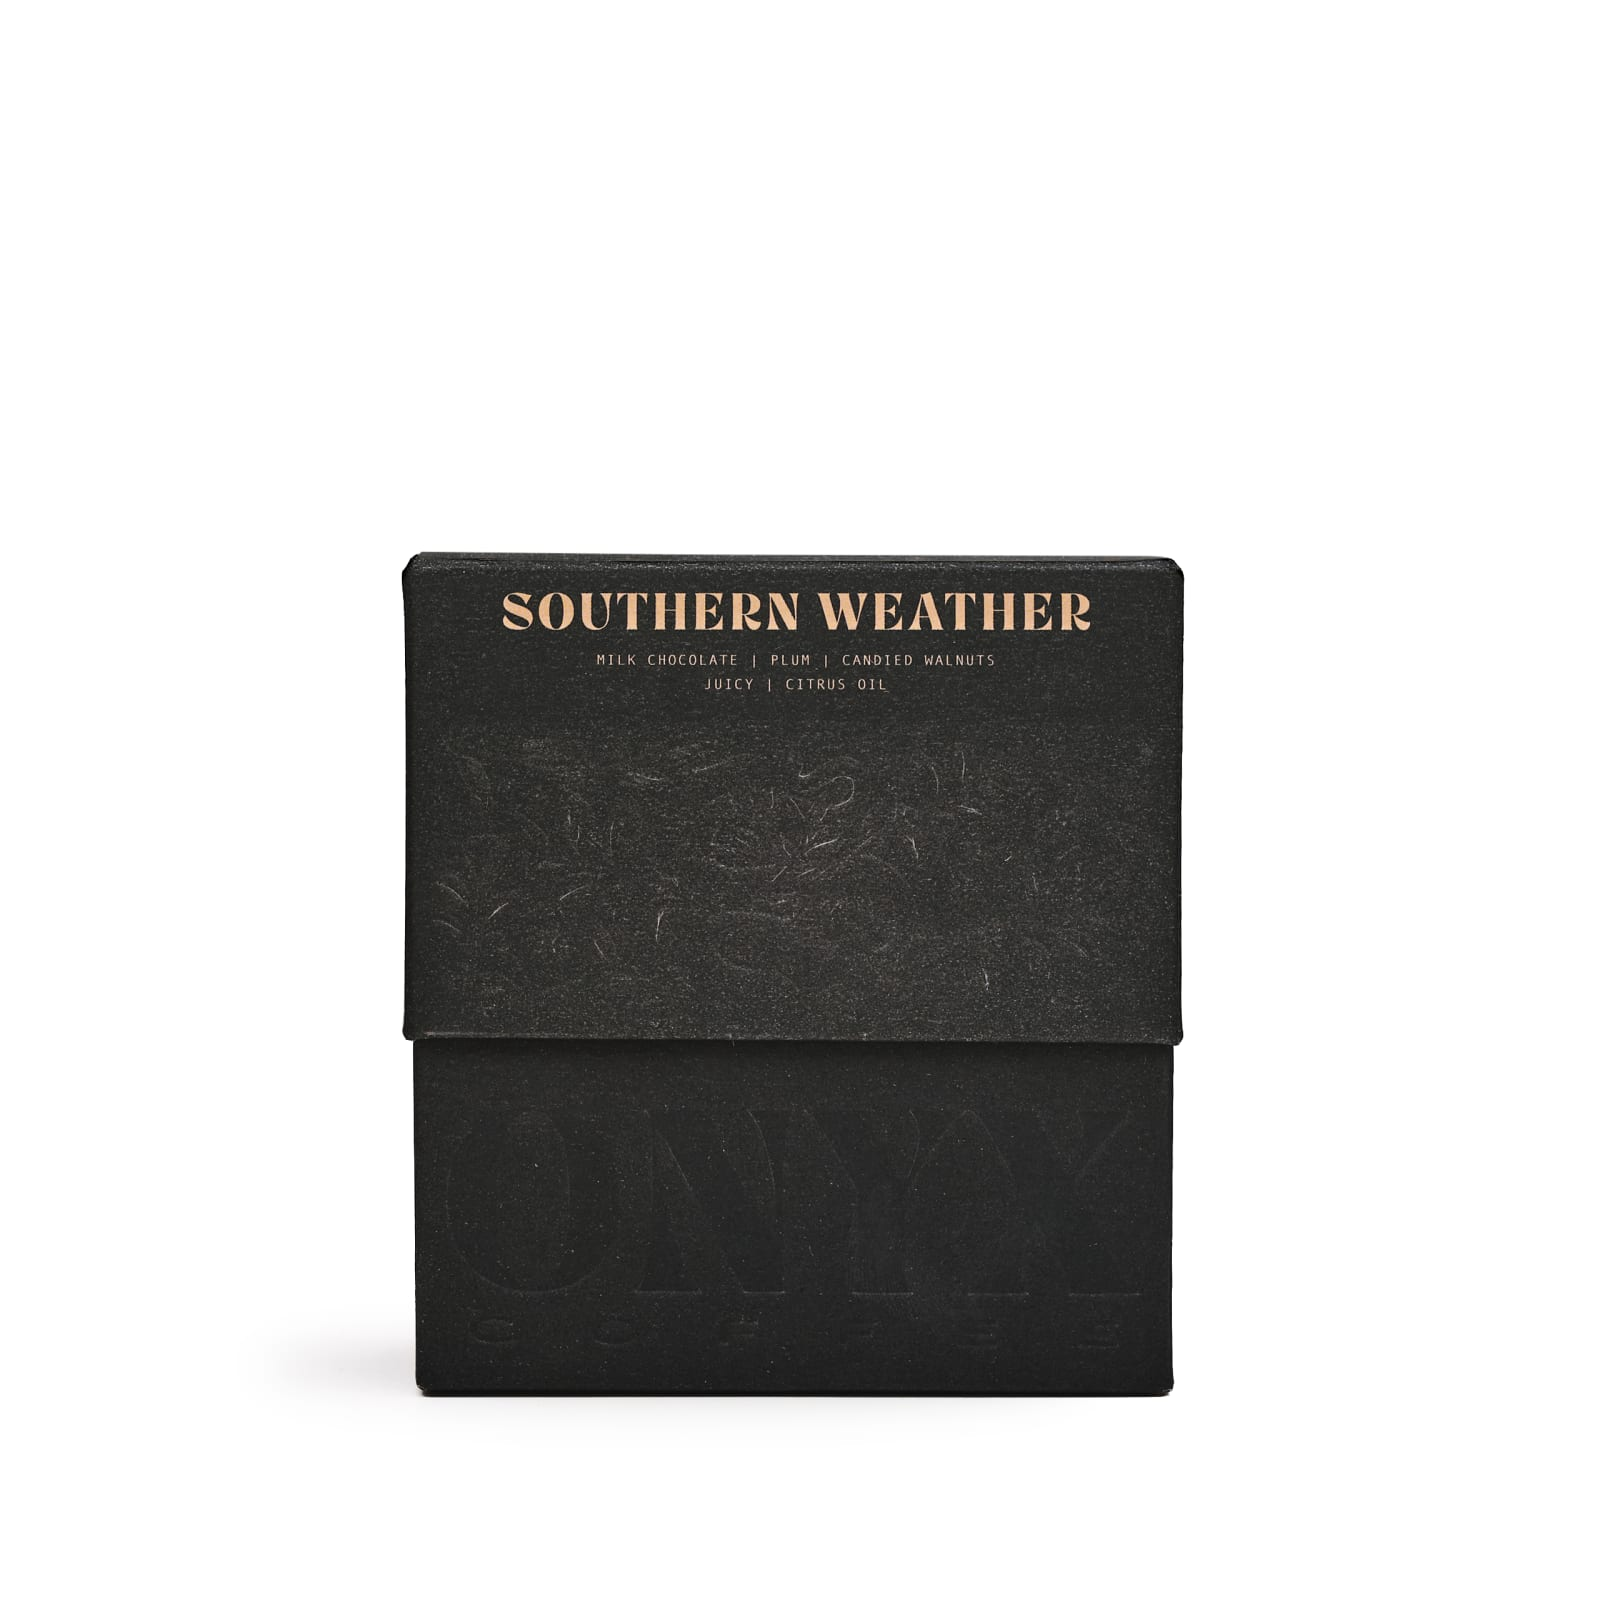 Southern Weather